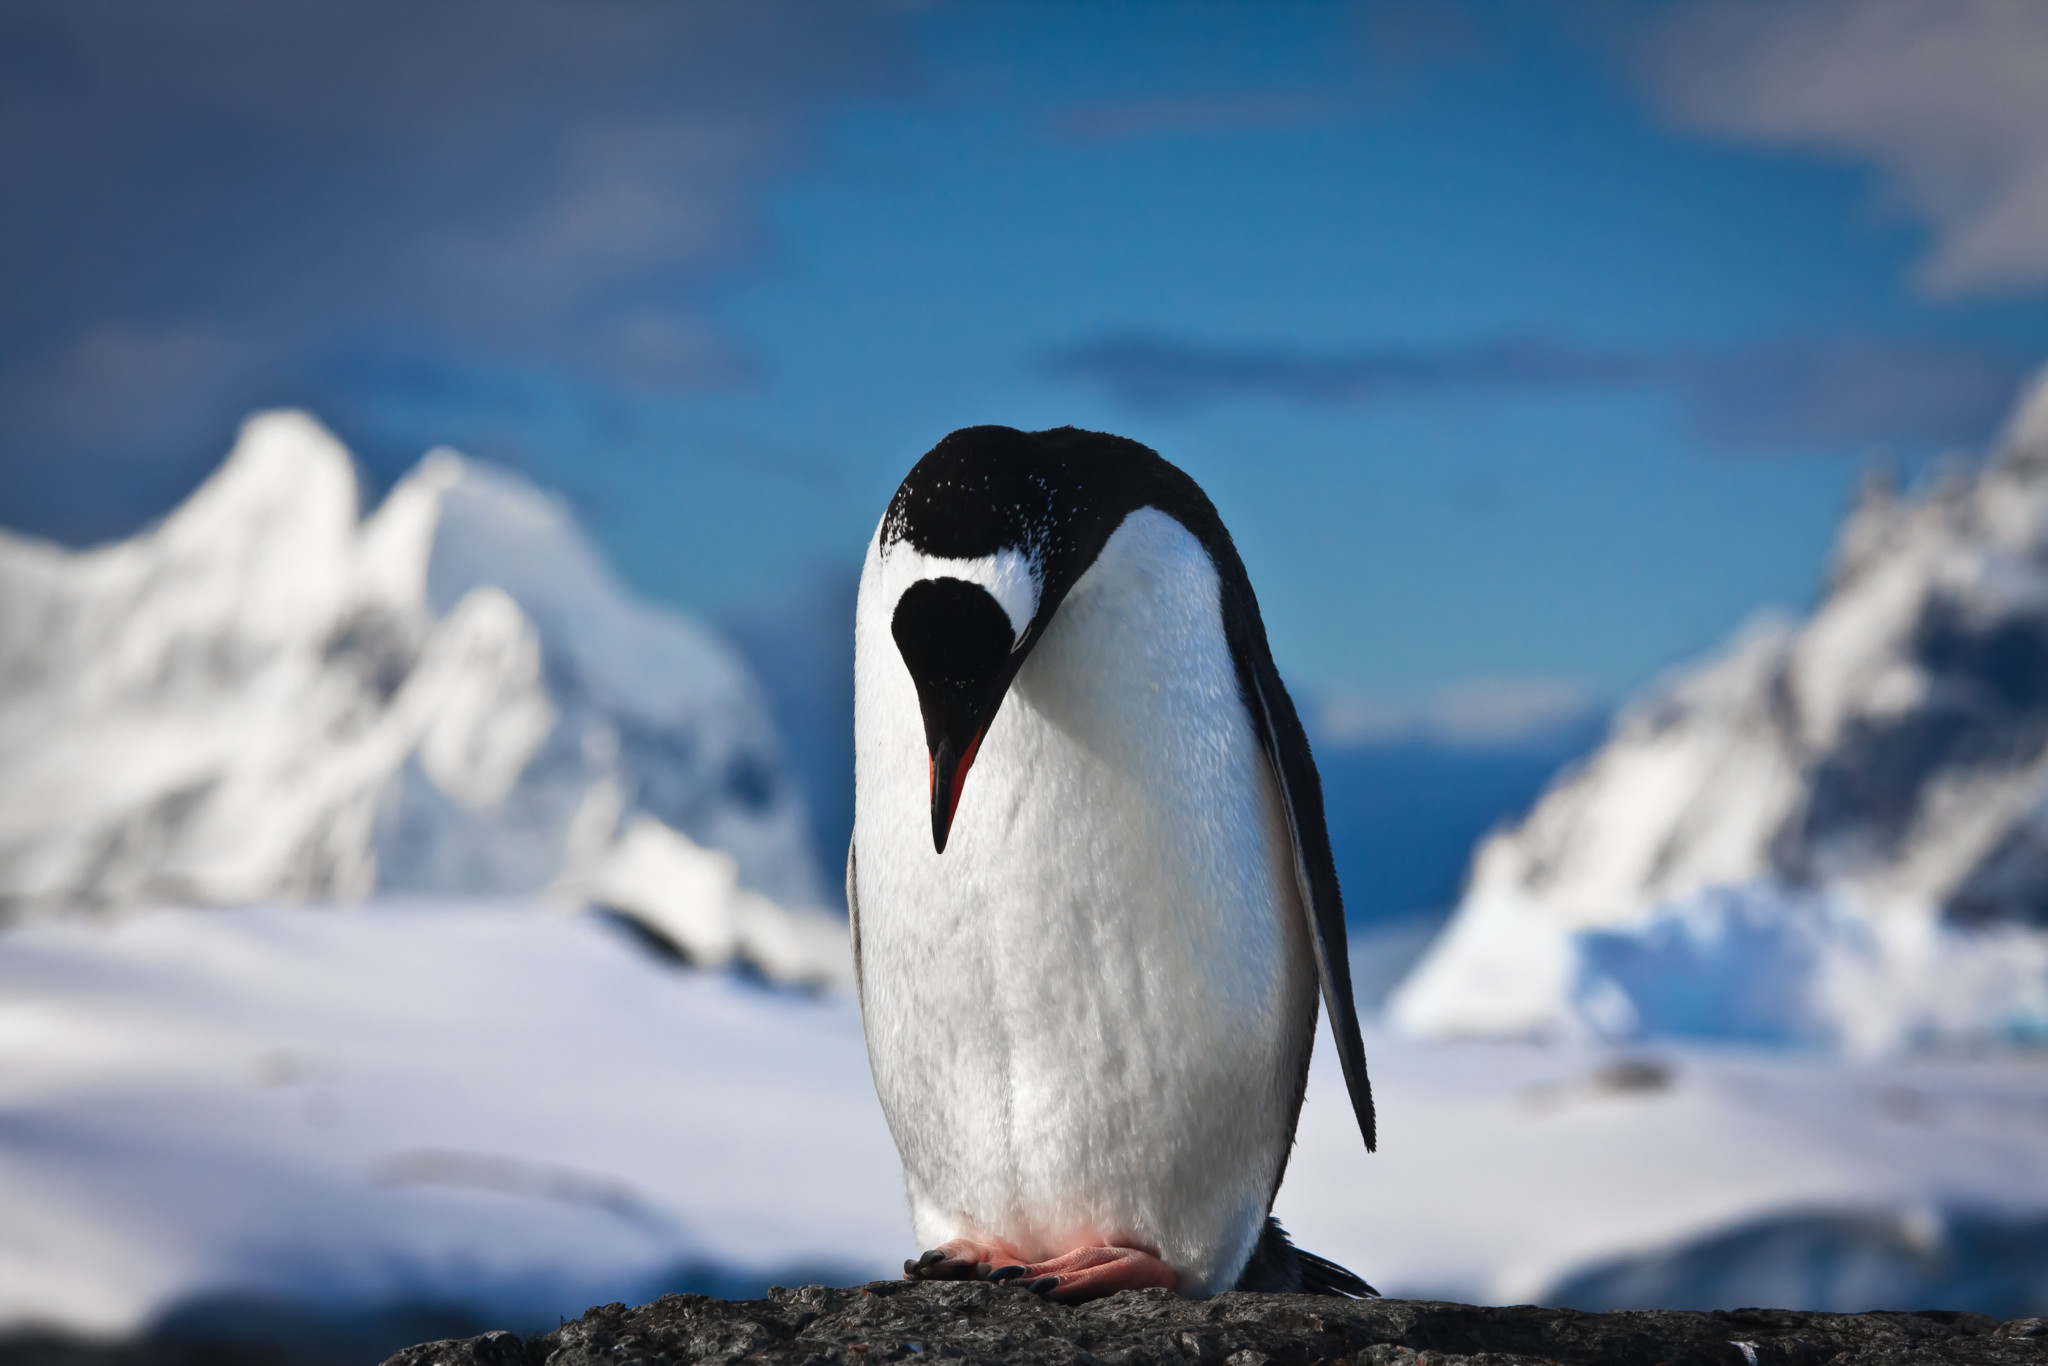 s cup s first penguins come to mumbai zoo s cup hey buddy what are you looking for photo credit shutterstock